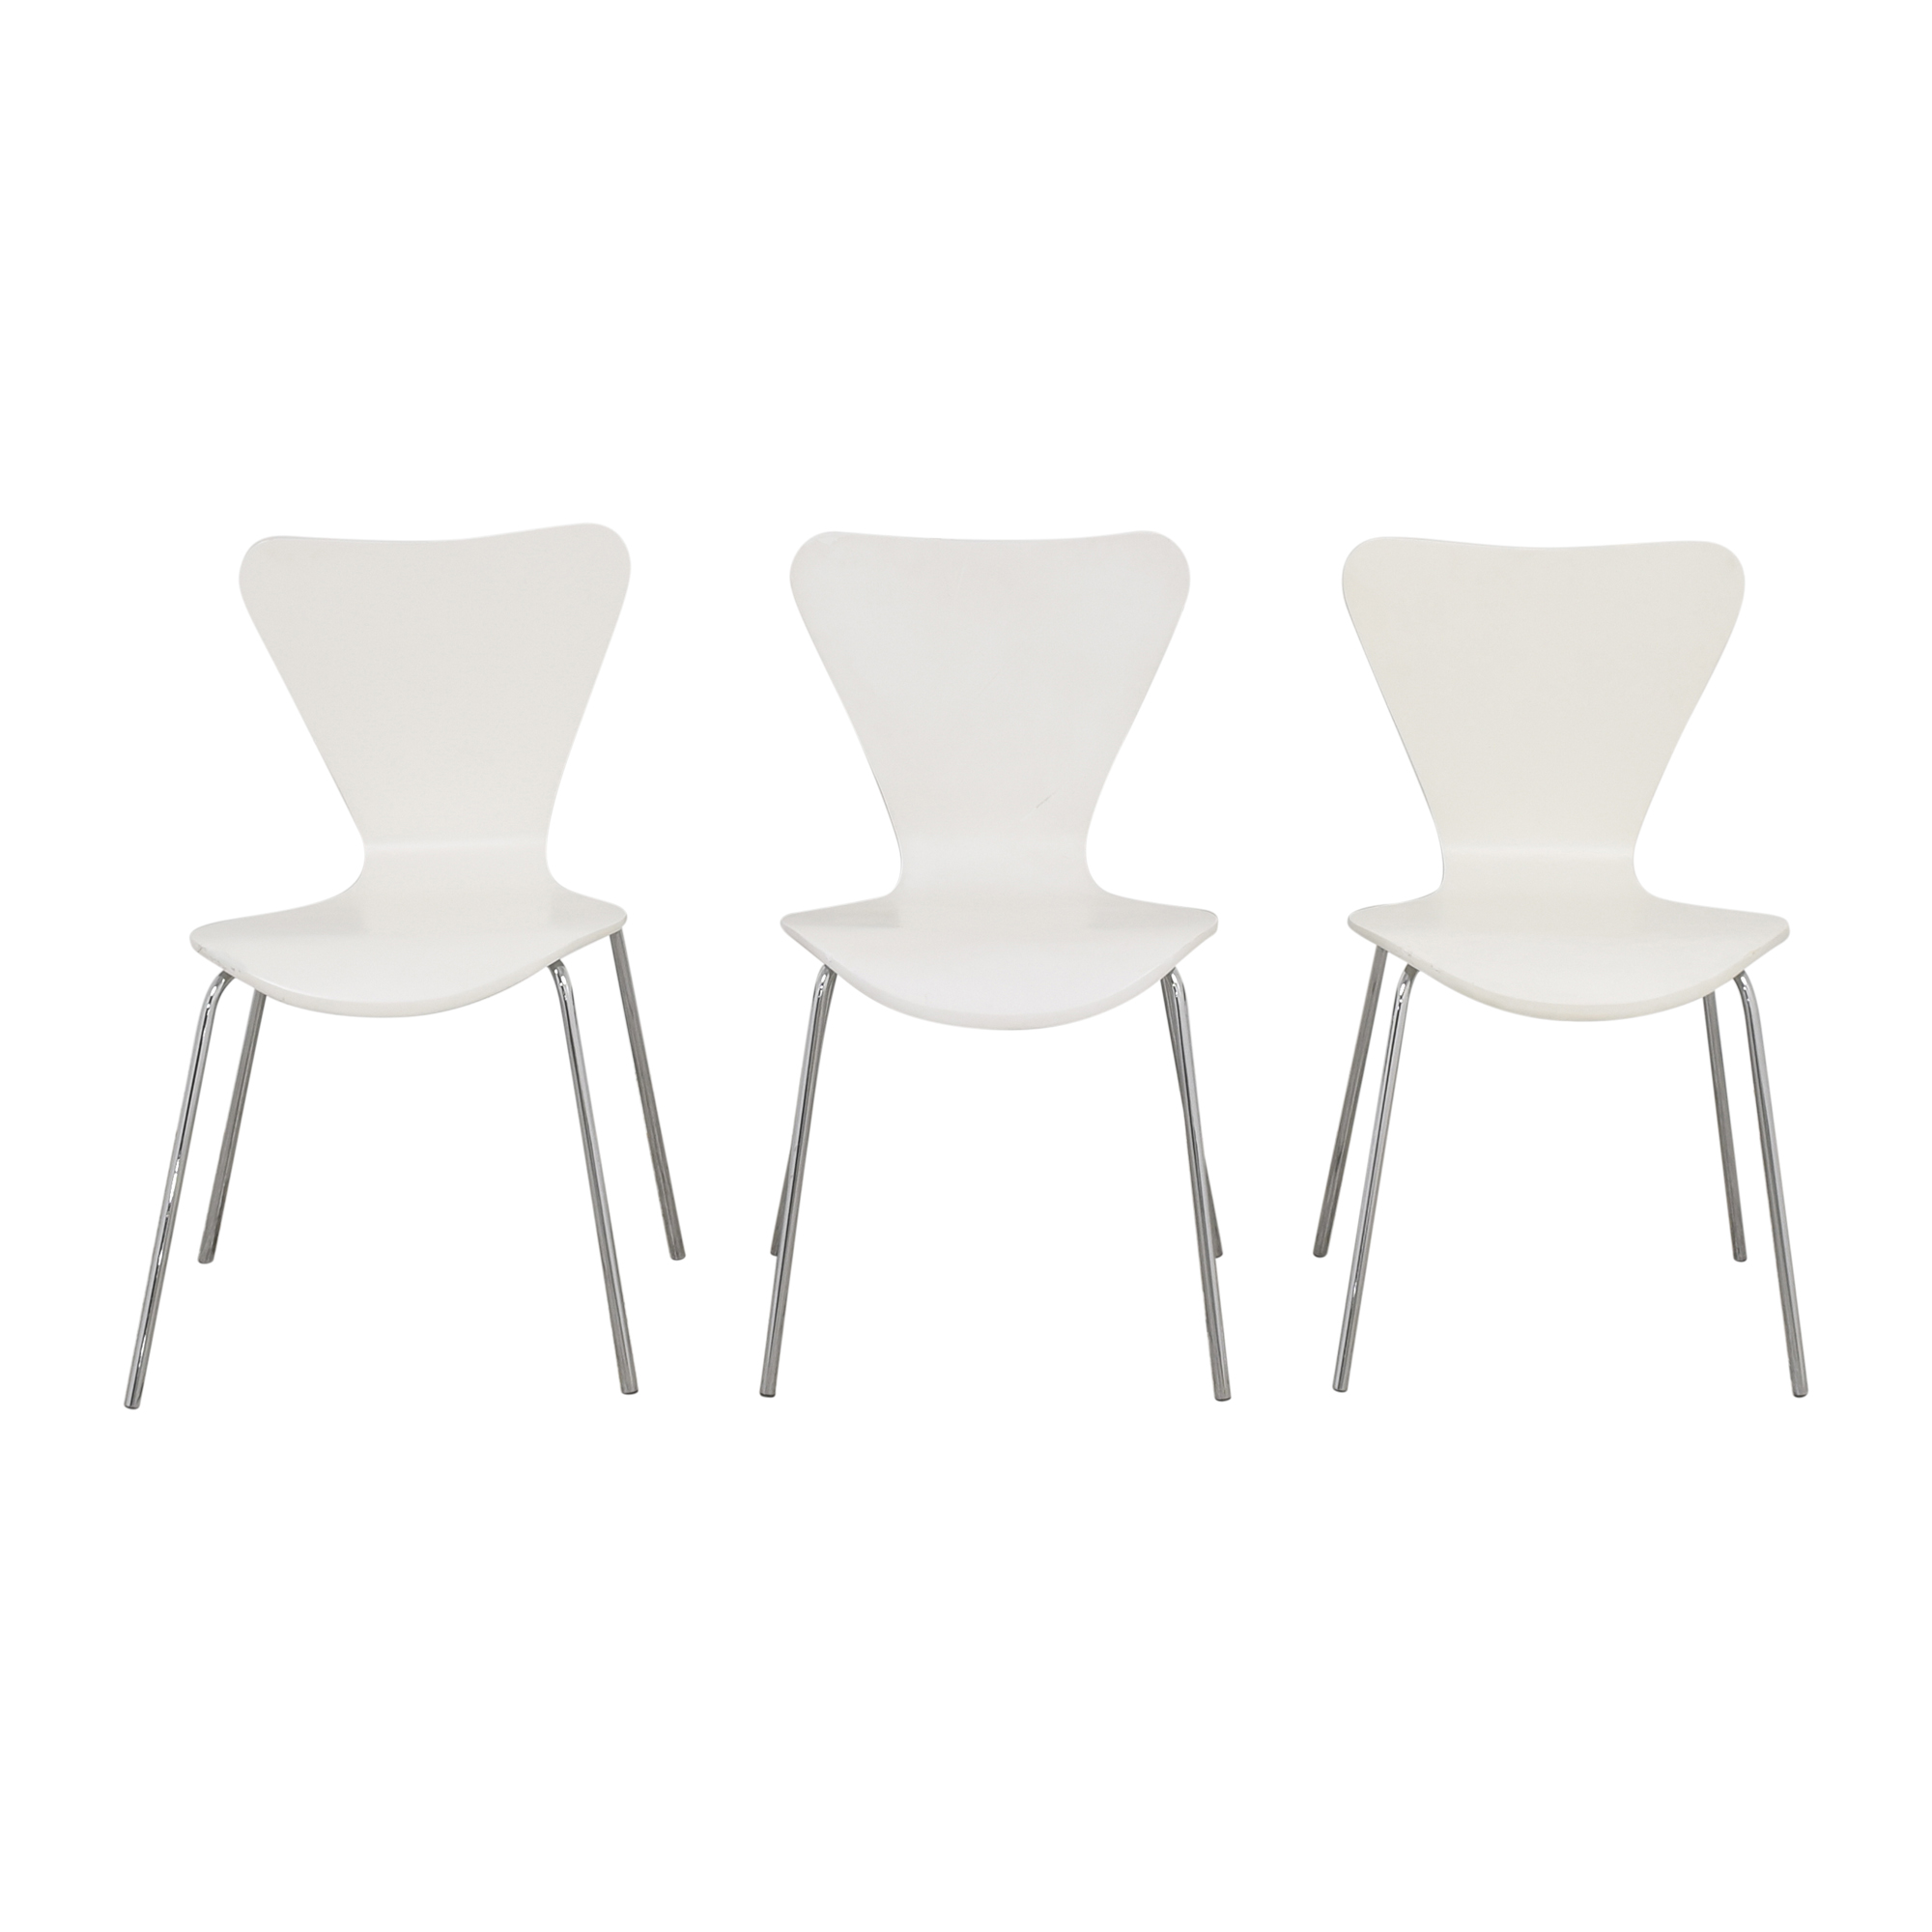 Room & Board Room & Board Jake Dining Chairs dimensions